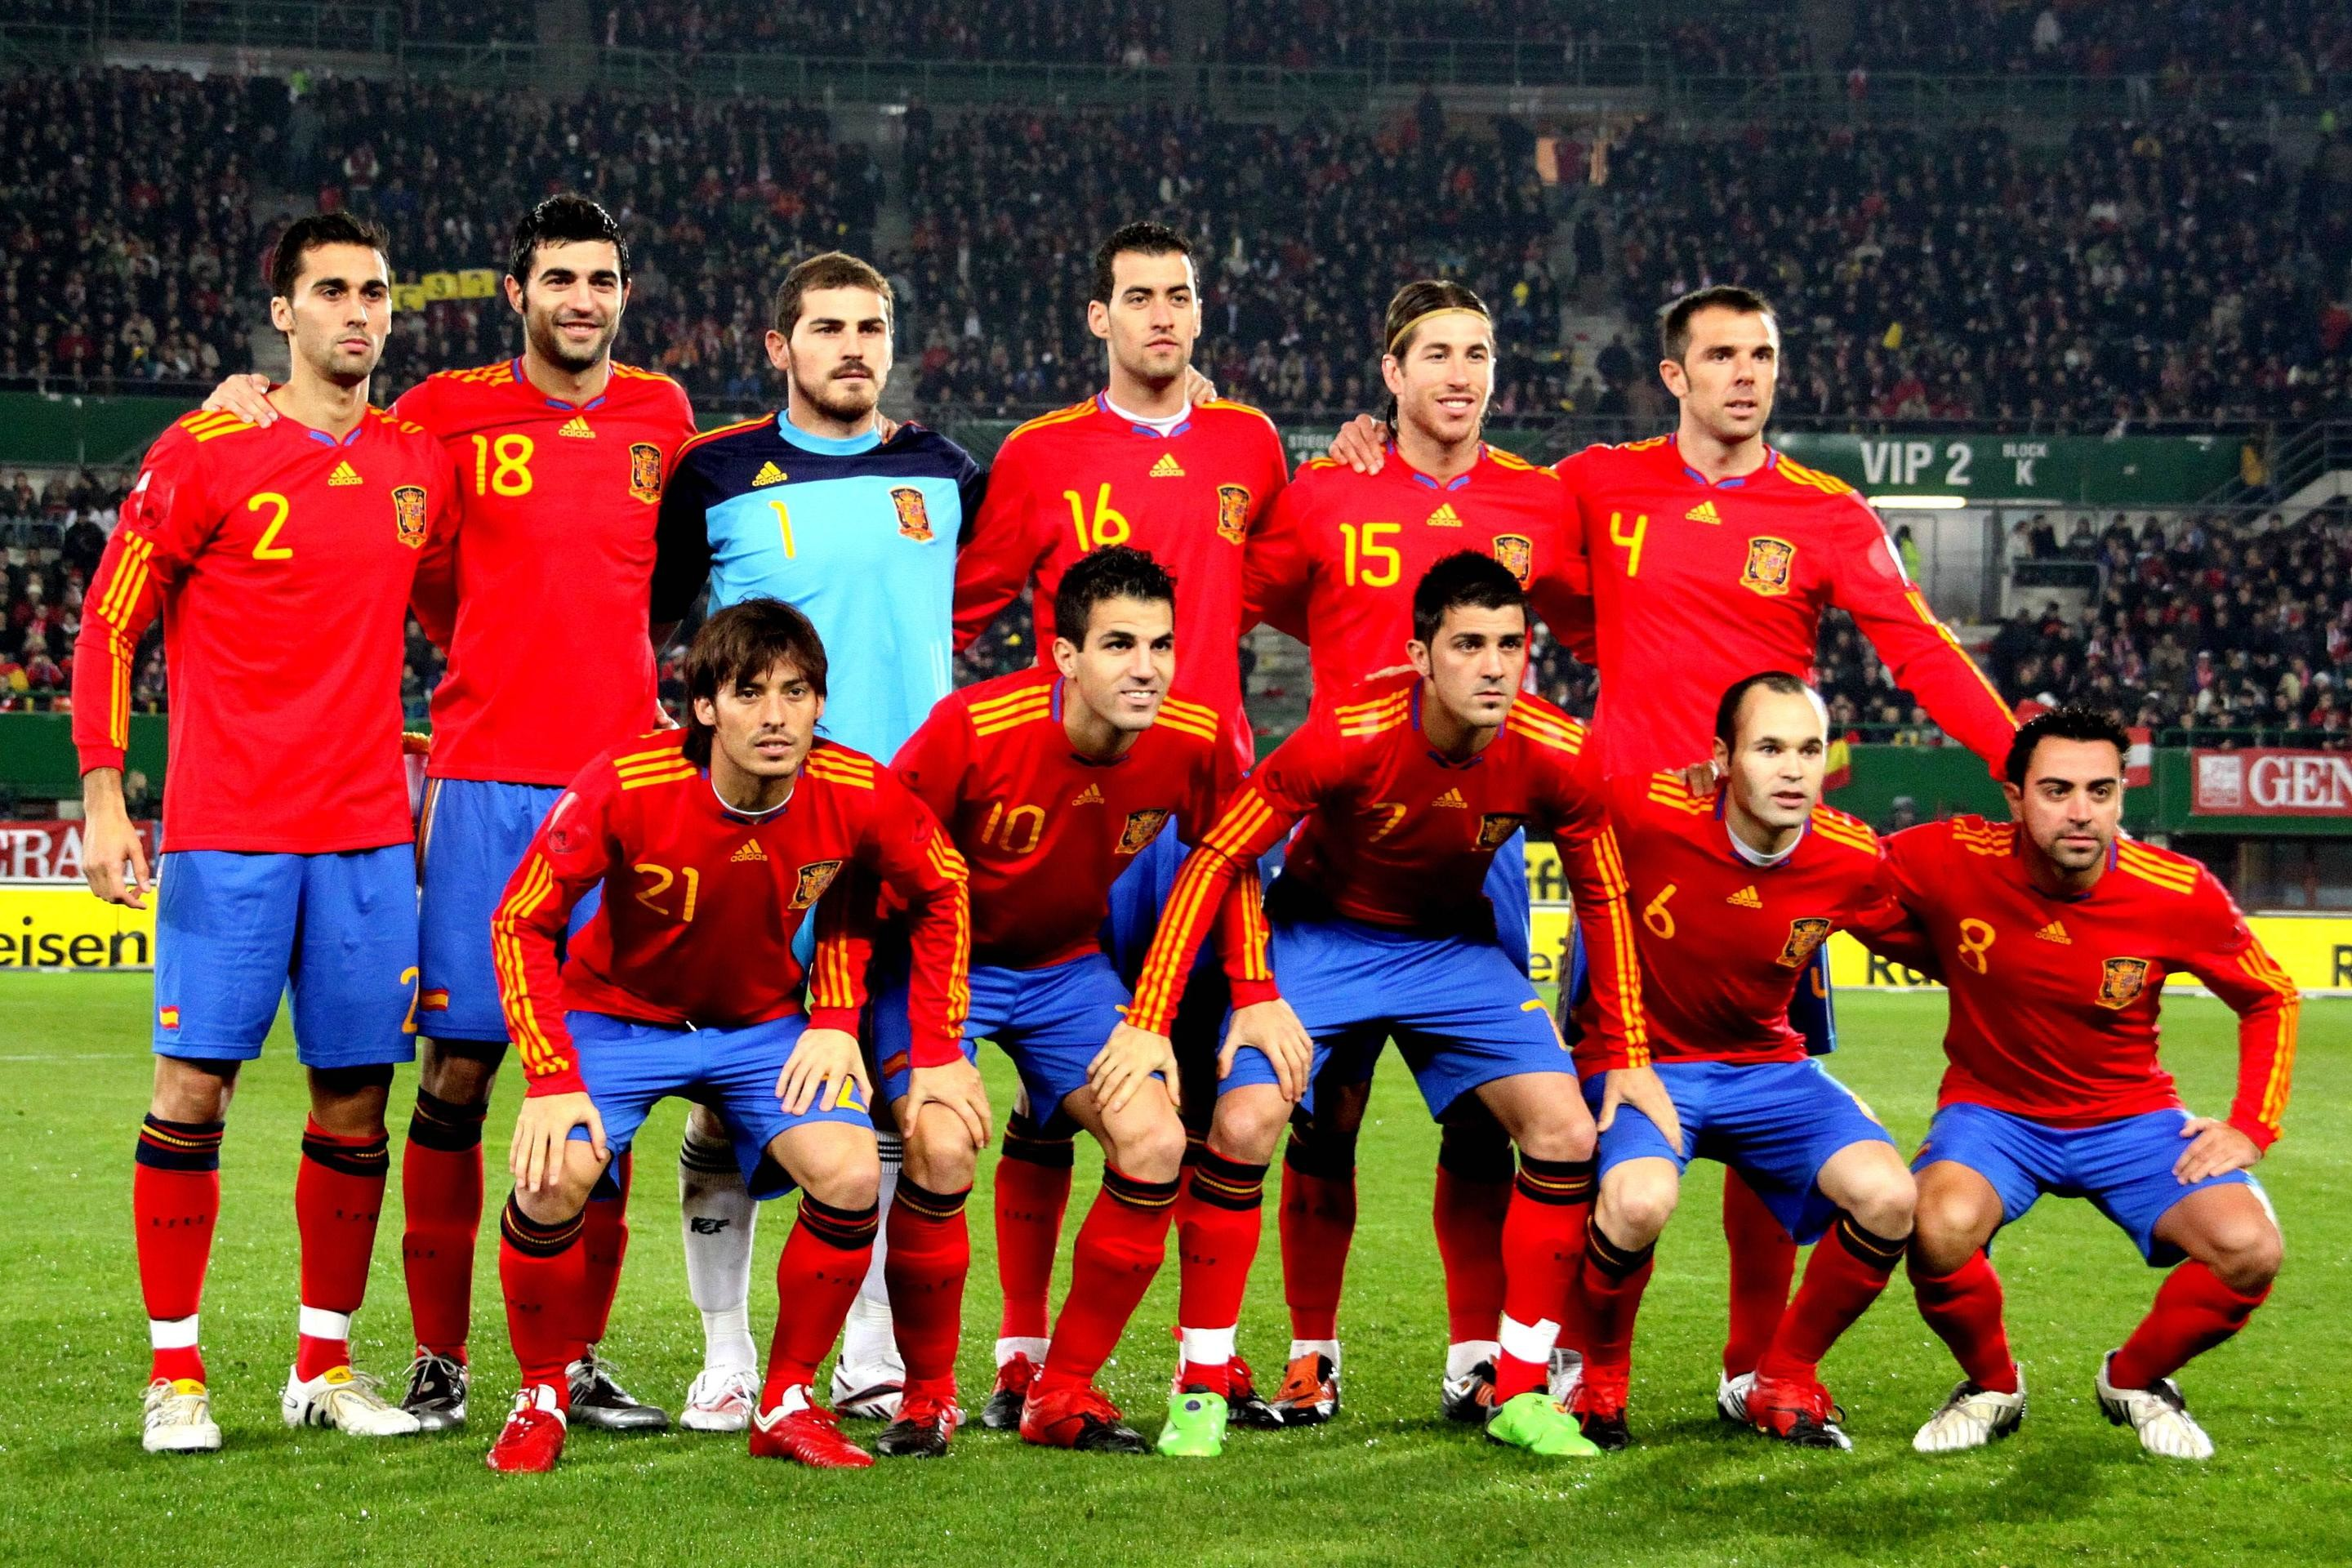 2880x1920 Spain Football Team HD Images Find best latest Spain Football Team HD Images  for your PC